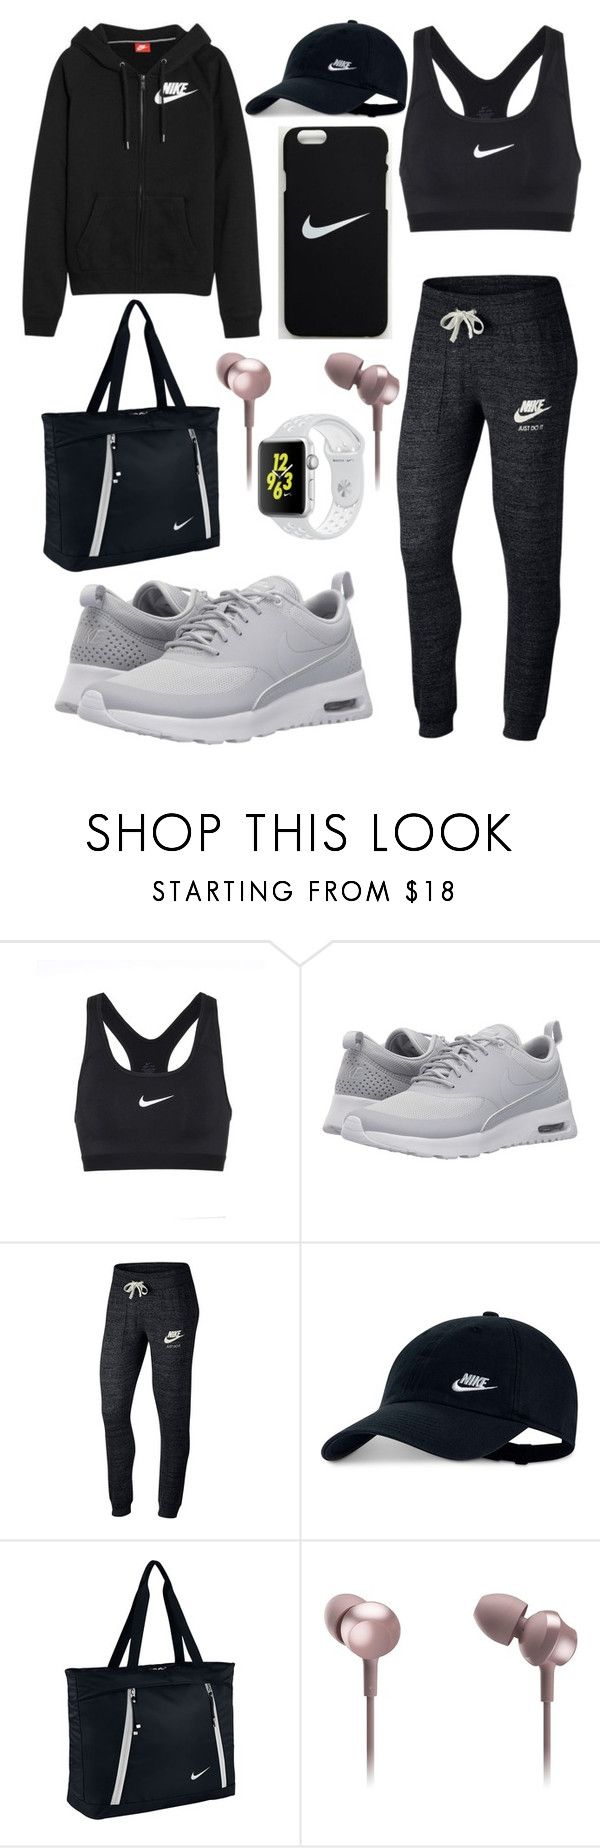 """""""Nike"""" by deehat ❤ liked on Polyvore featuring NIKE and Panasonic"""